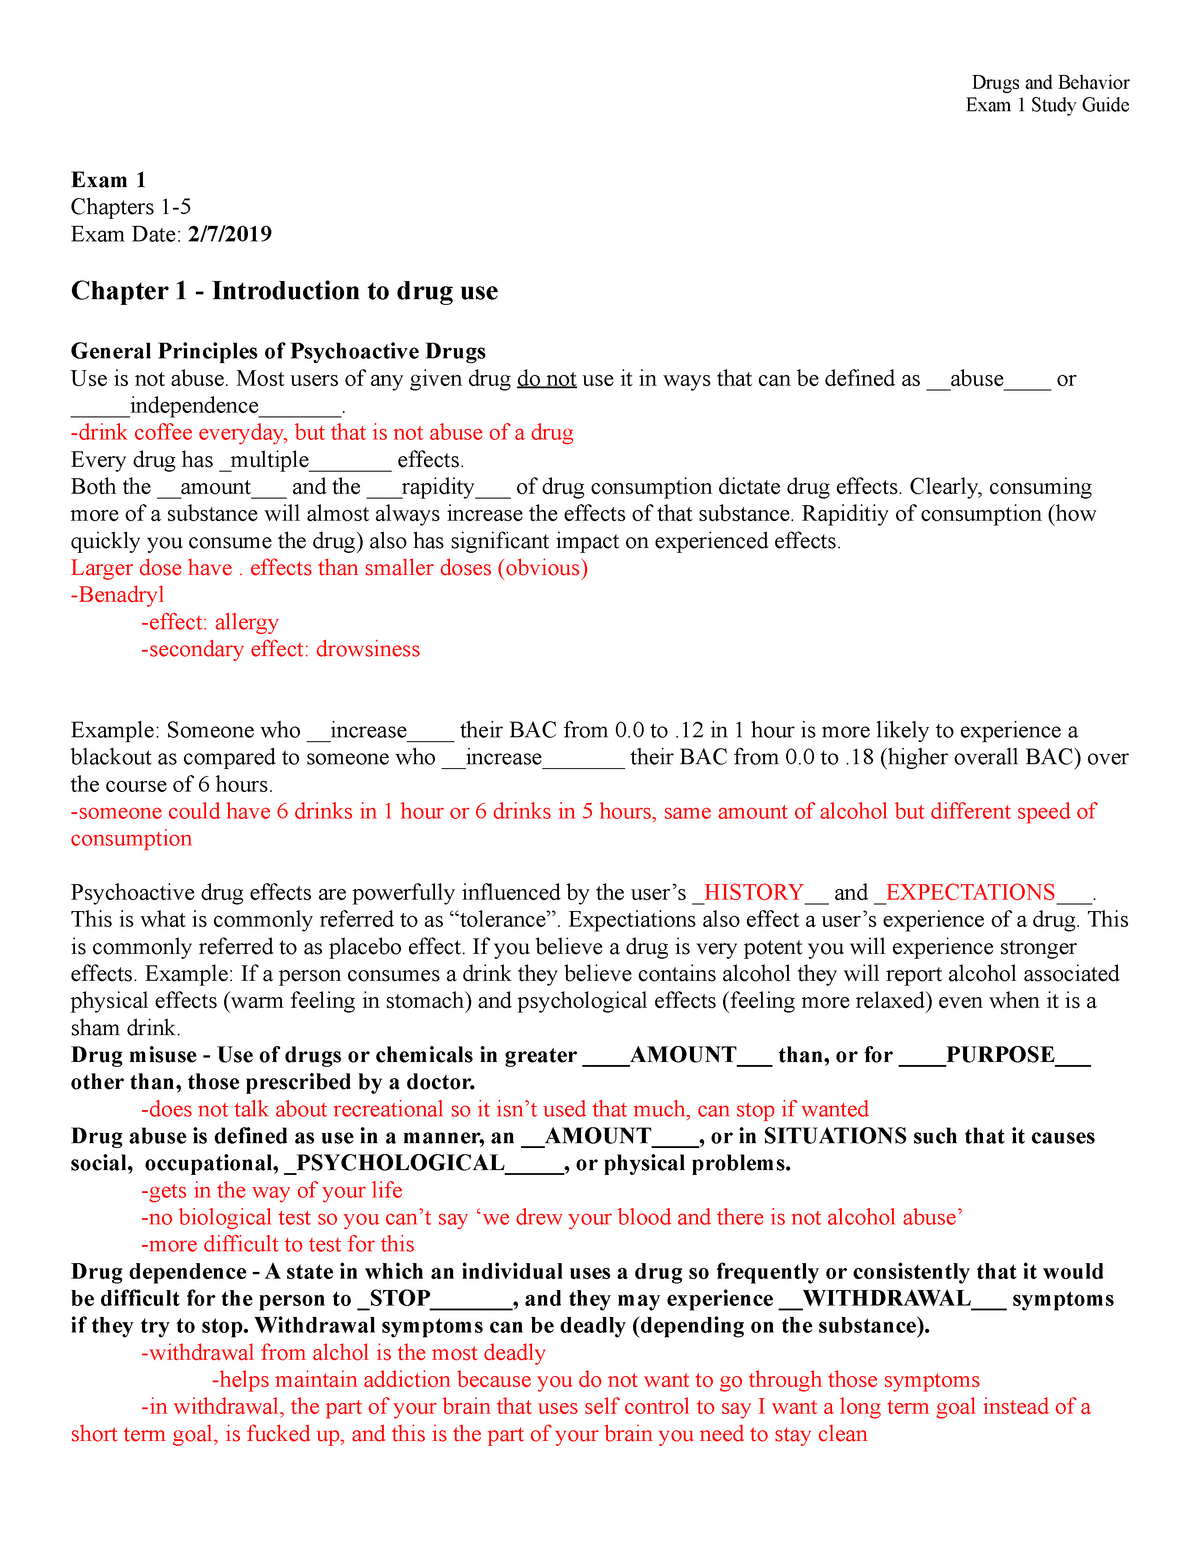 Study Guide Exam 1 Spring 2019 - PSYC 41364: Drugs and Behavior